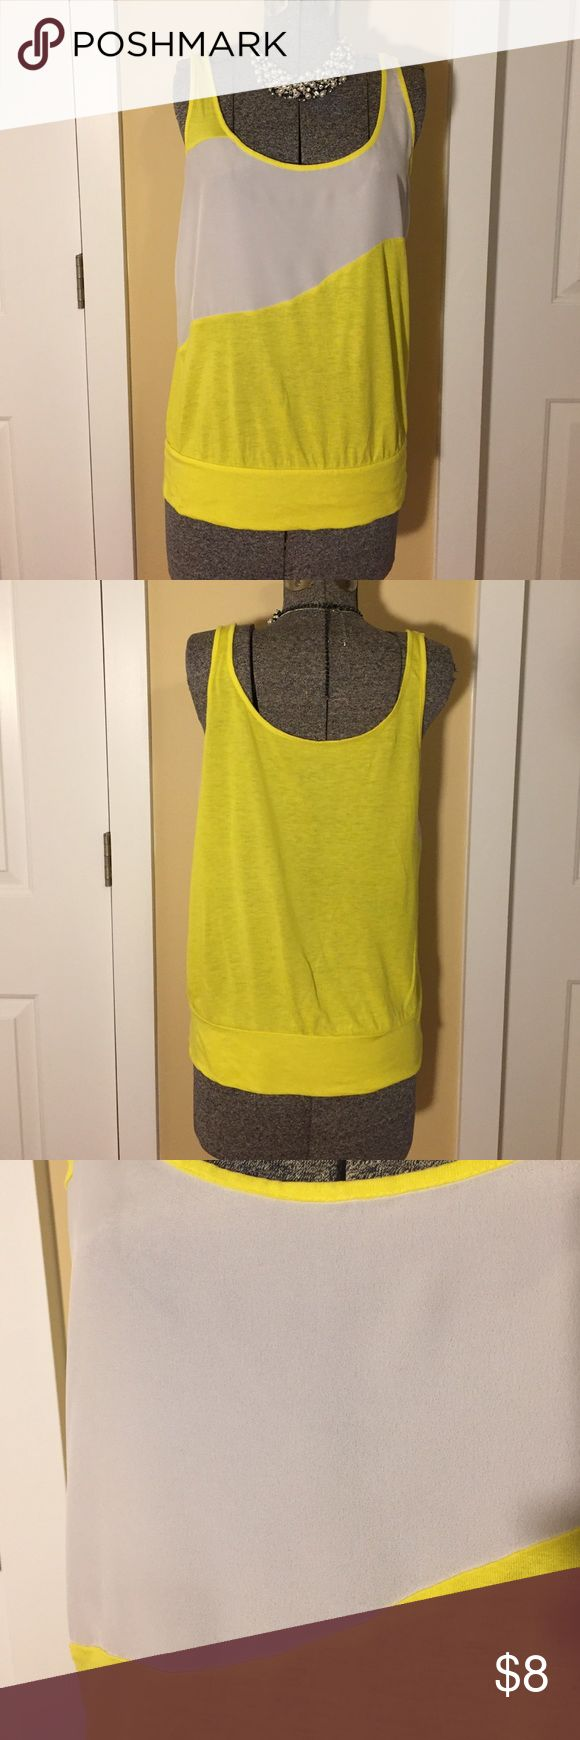 New York & Company tank top New York and Conpany tank top 💛 great condition 💛 size medium 💛 yellow and white 💛 Thank you so much for visiting my page!! I'm currently offering free gift with every $20 you spend.  Be well and spread love. 💛 New York & Company Tops Tank Tops